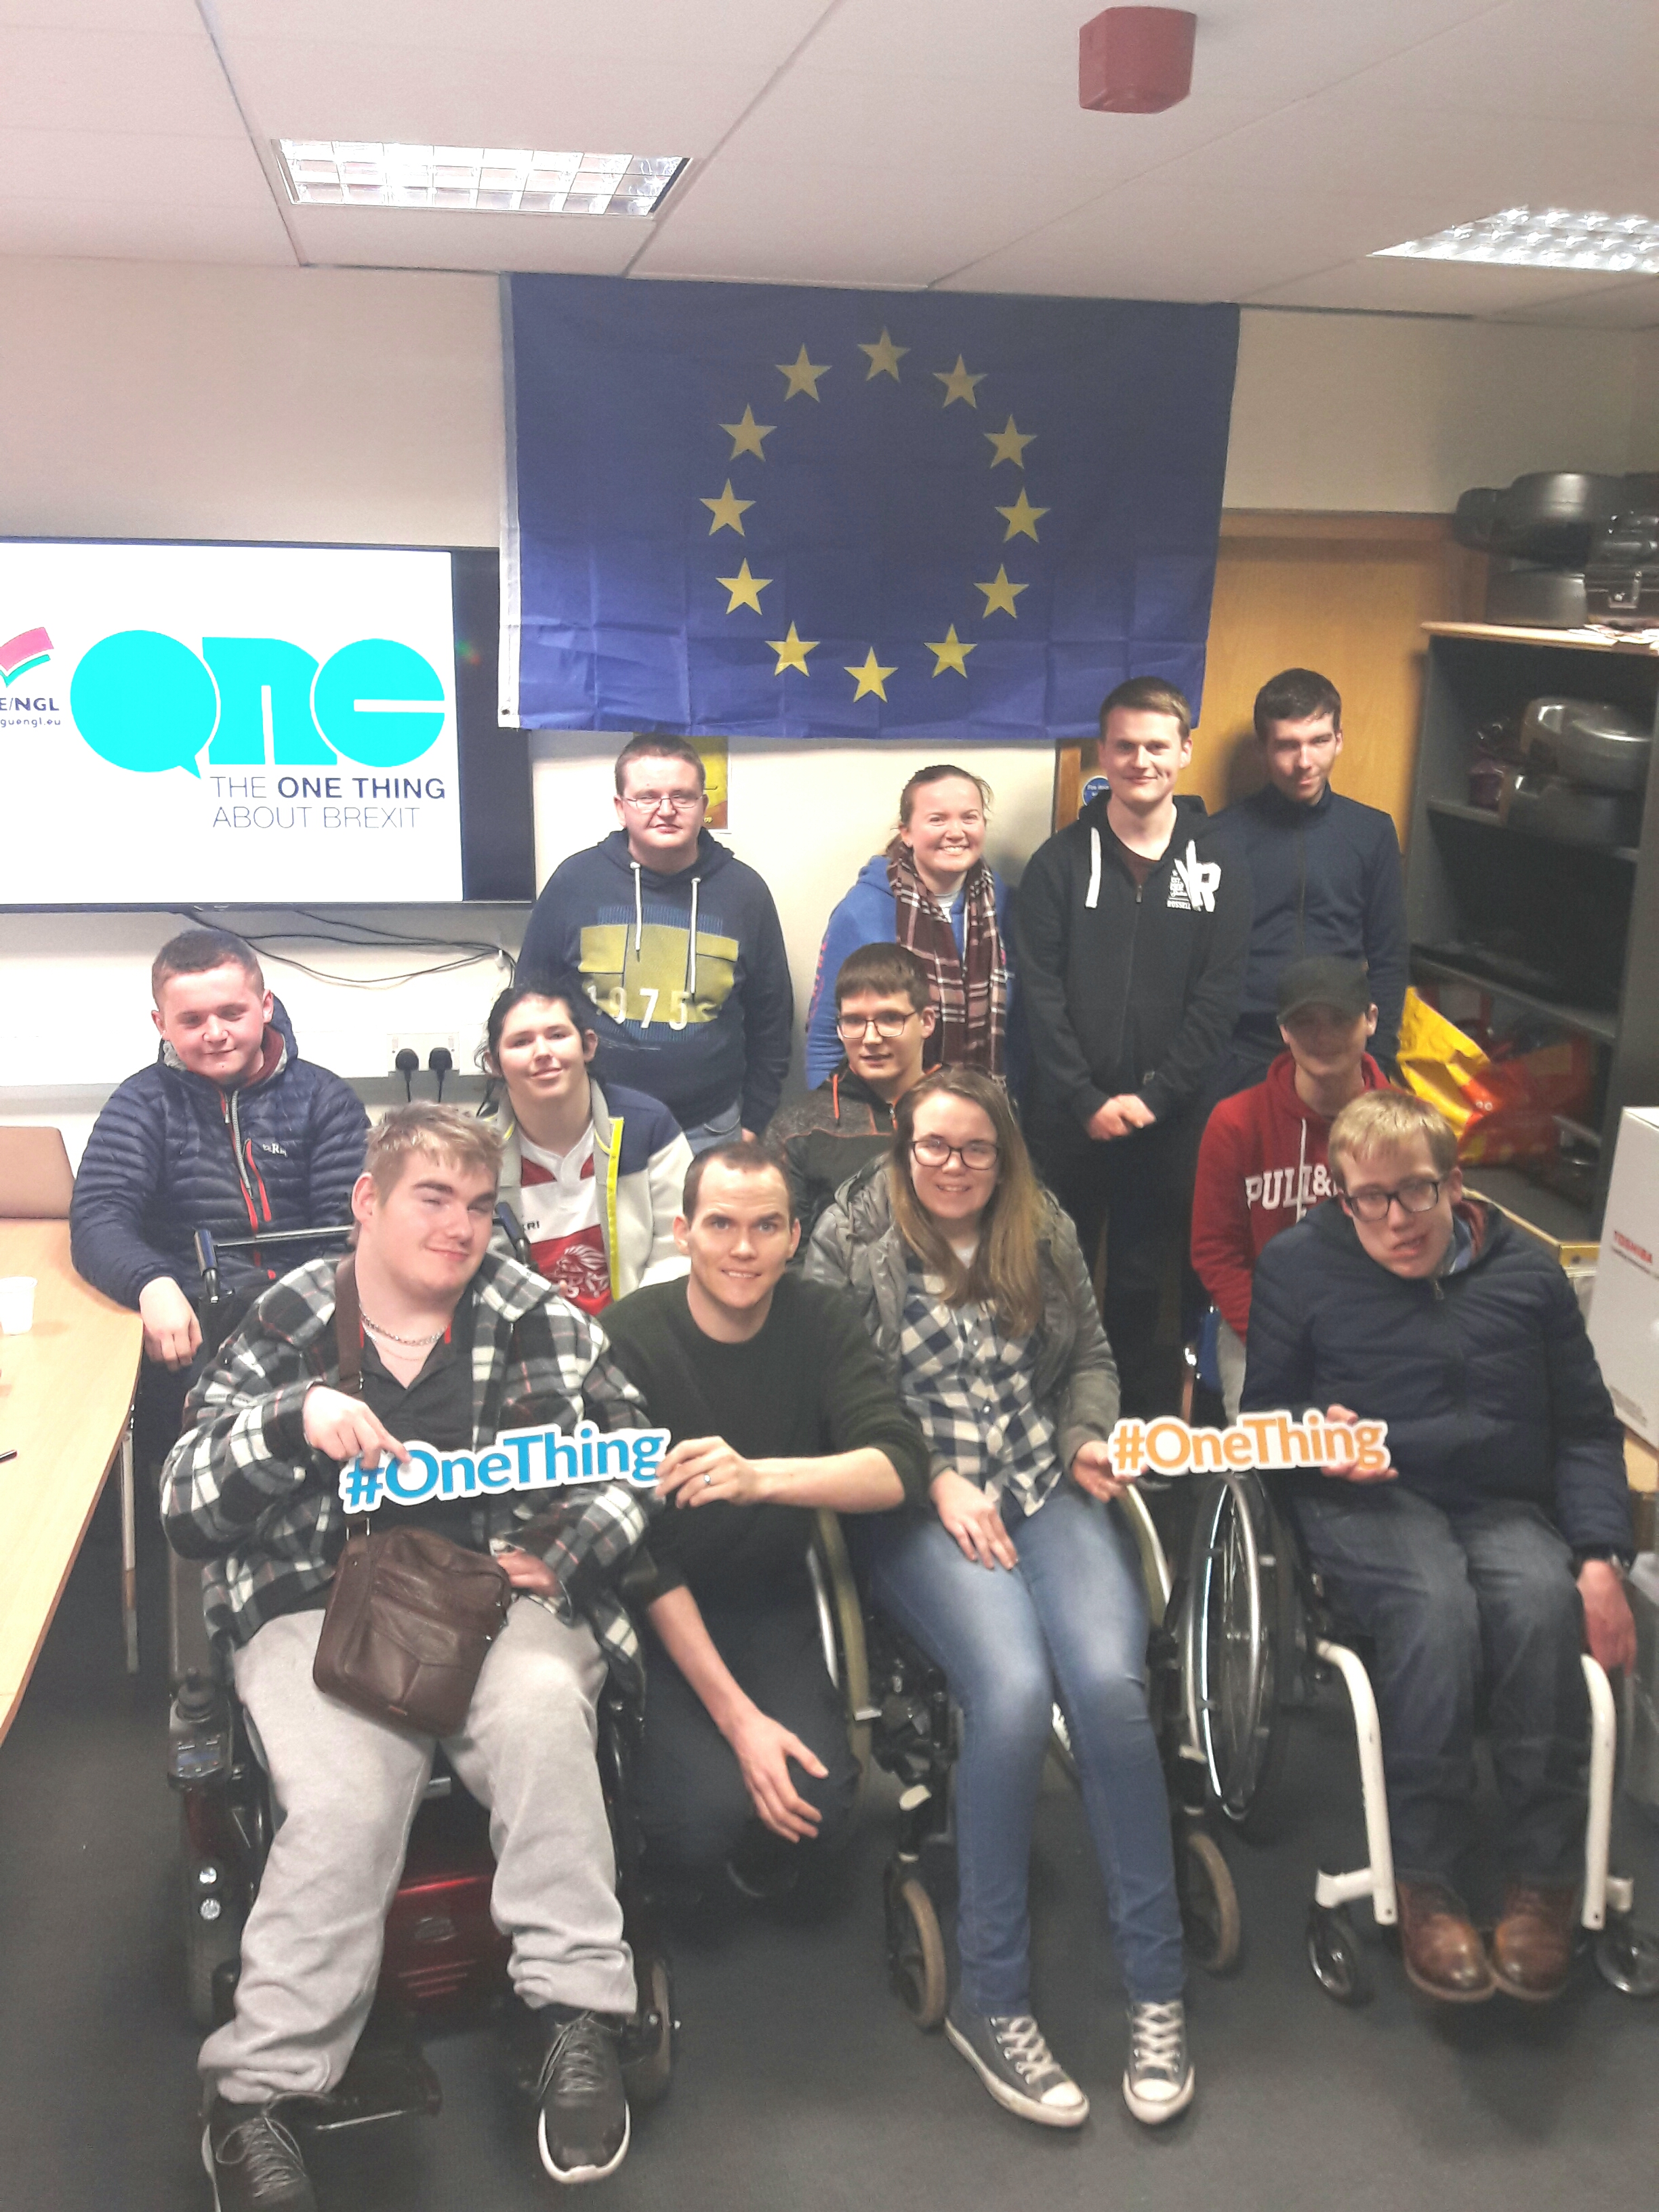 Our group of young people getting involved in the #OneThingAboutBrexit campaign